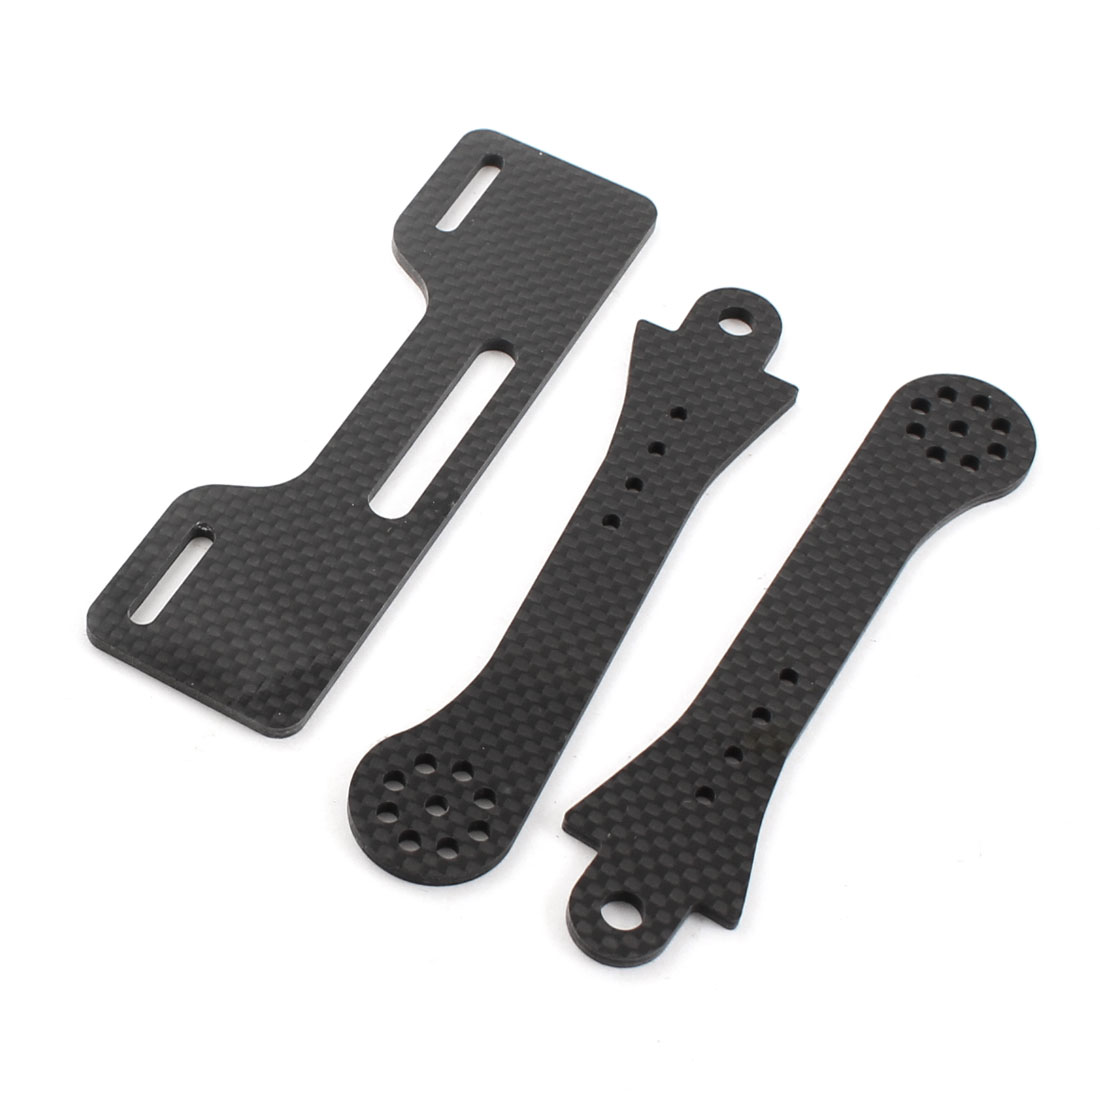 Carbon Fiber FPV Anti-Vibration Camera Platform Mount for RC Model Helicopter